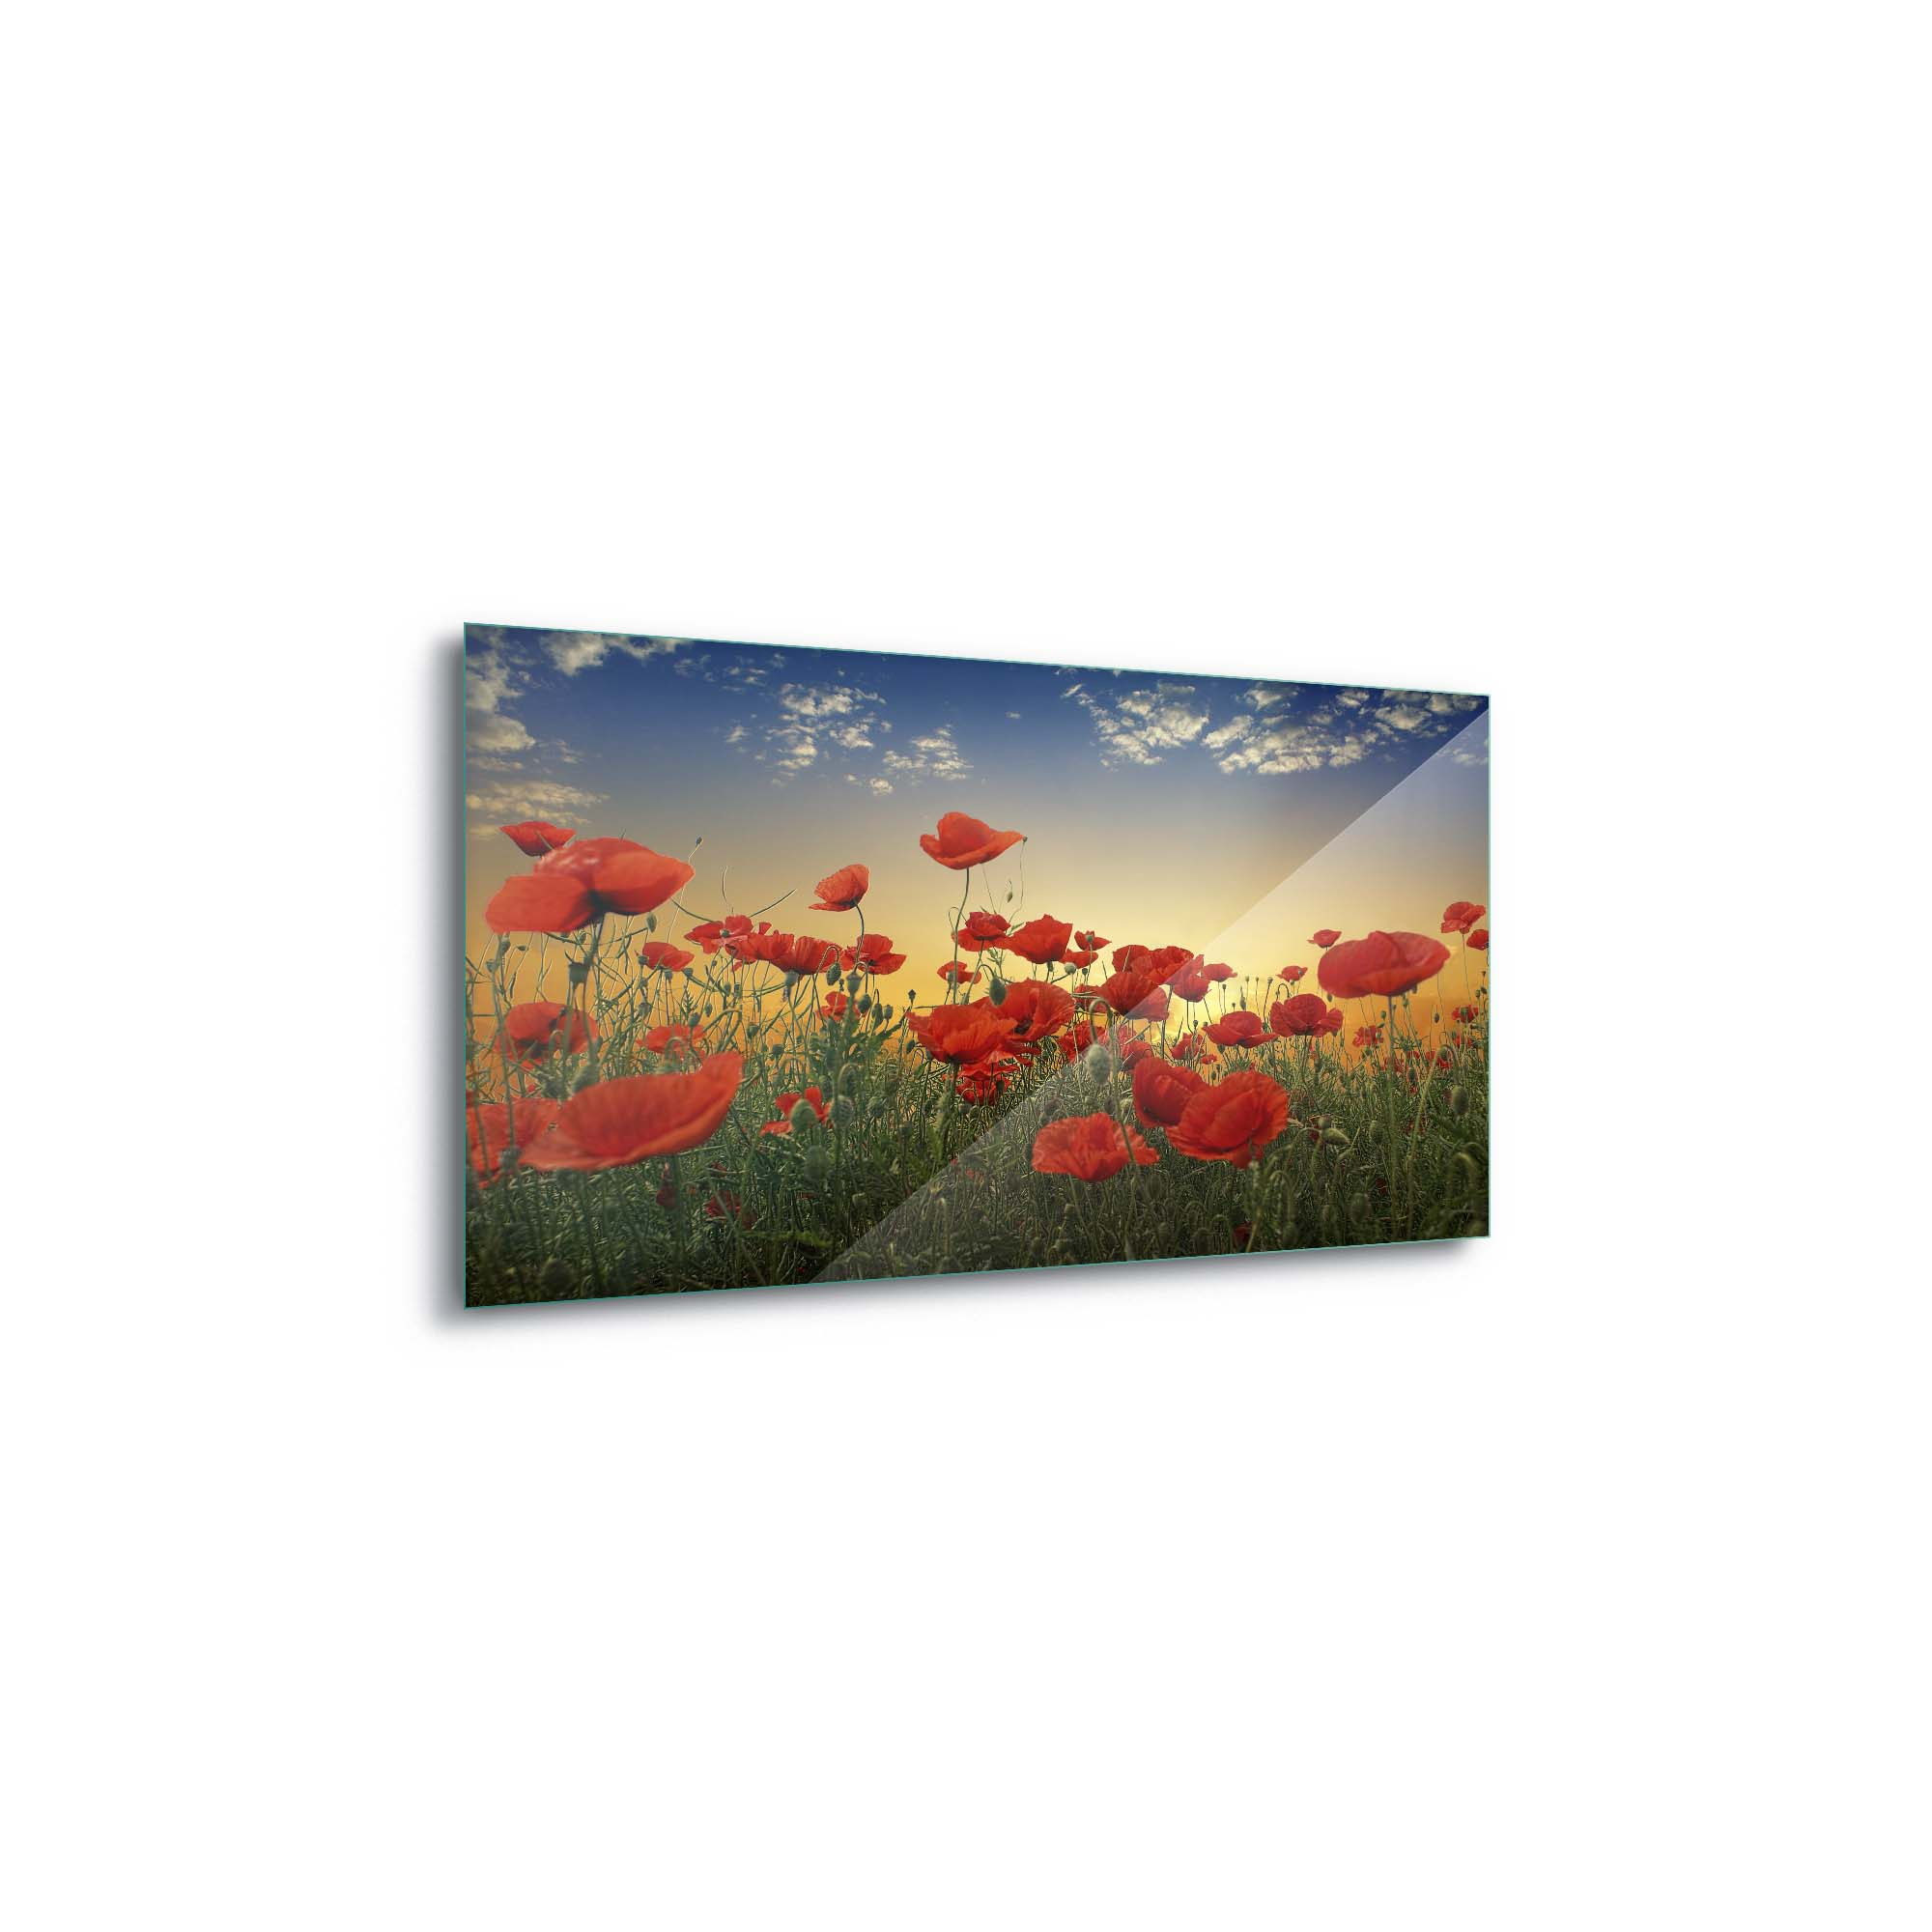 Glass printed Poppies in a Field